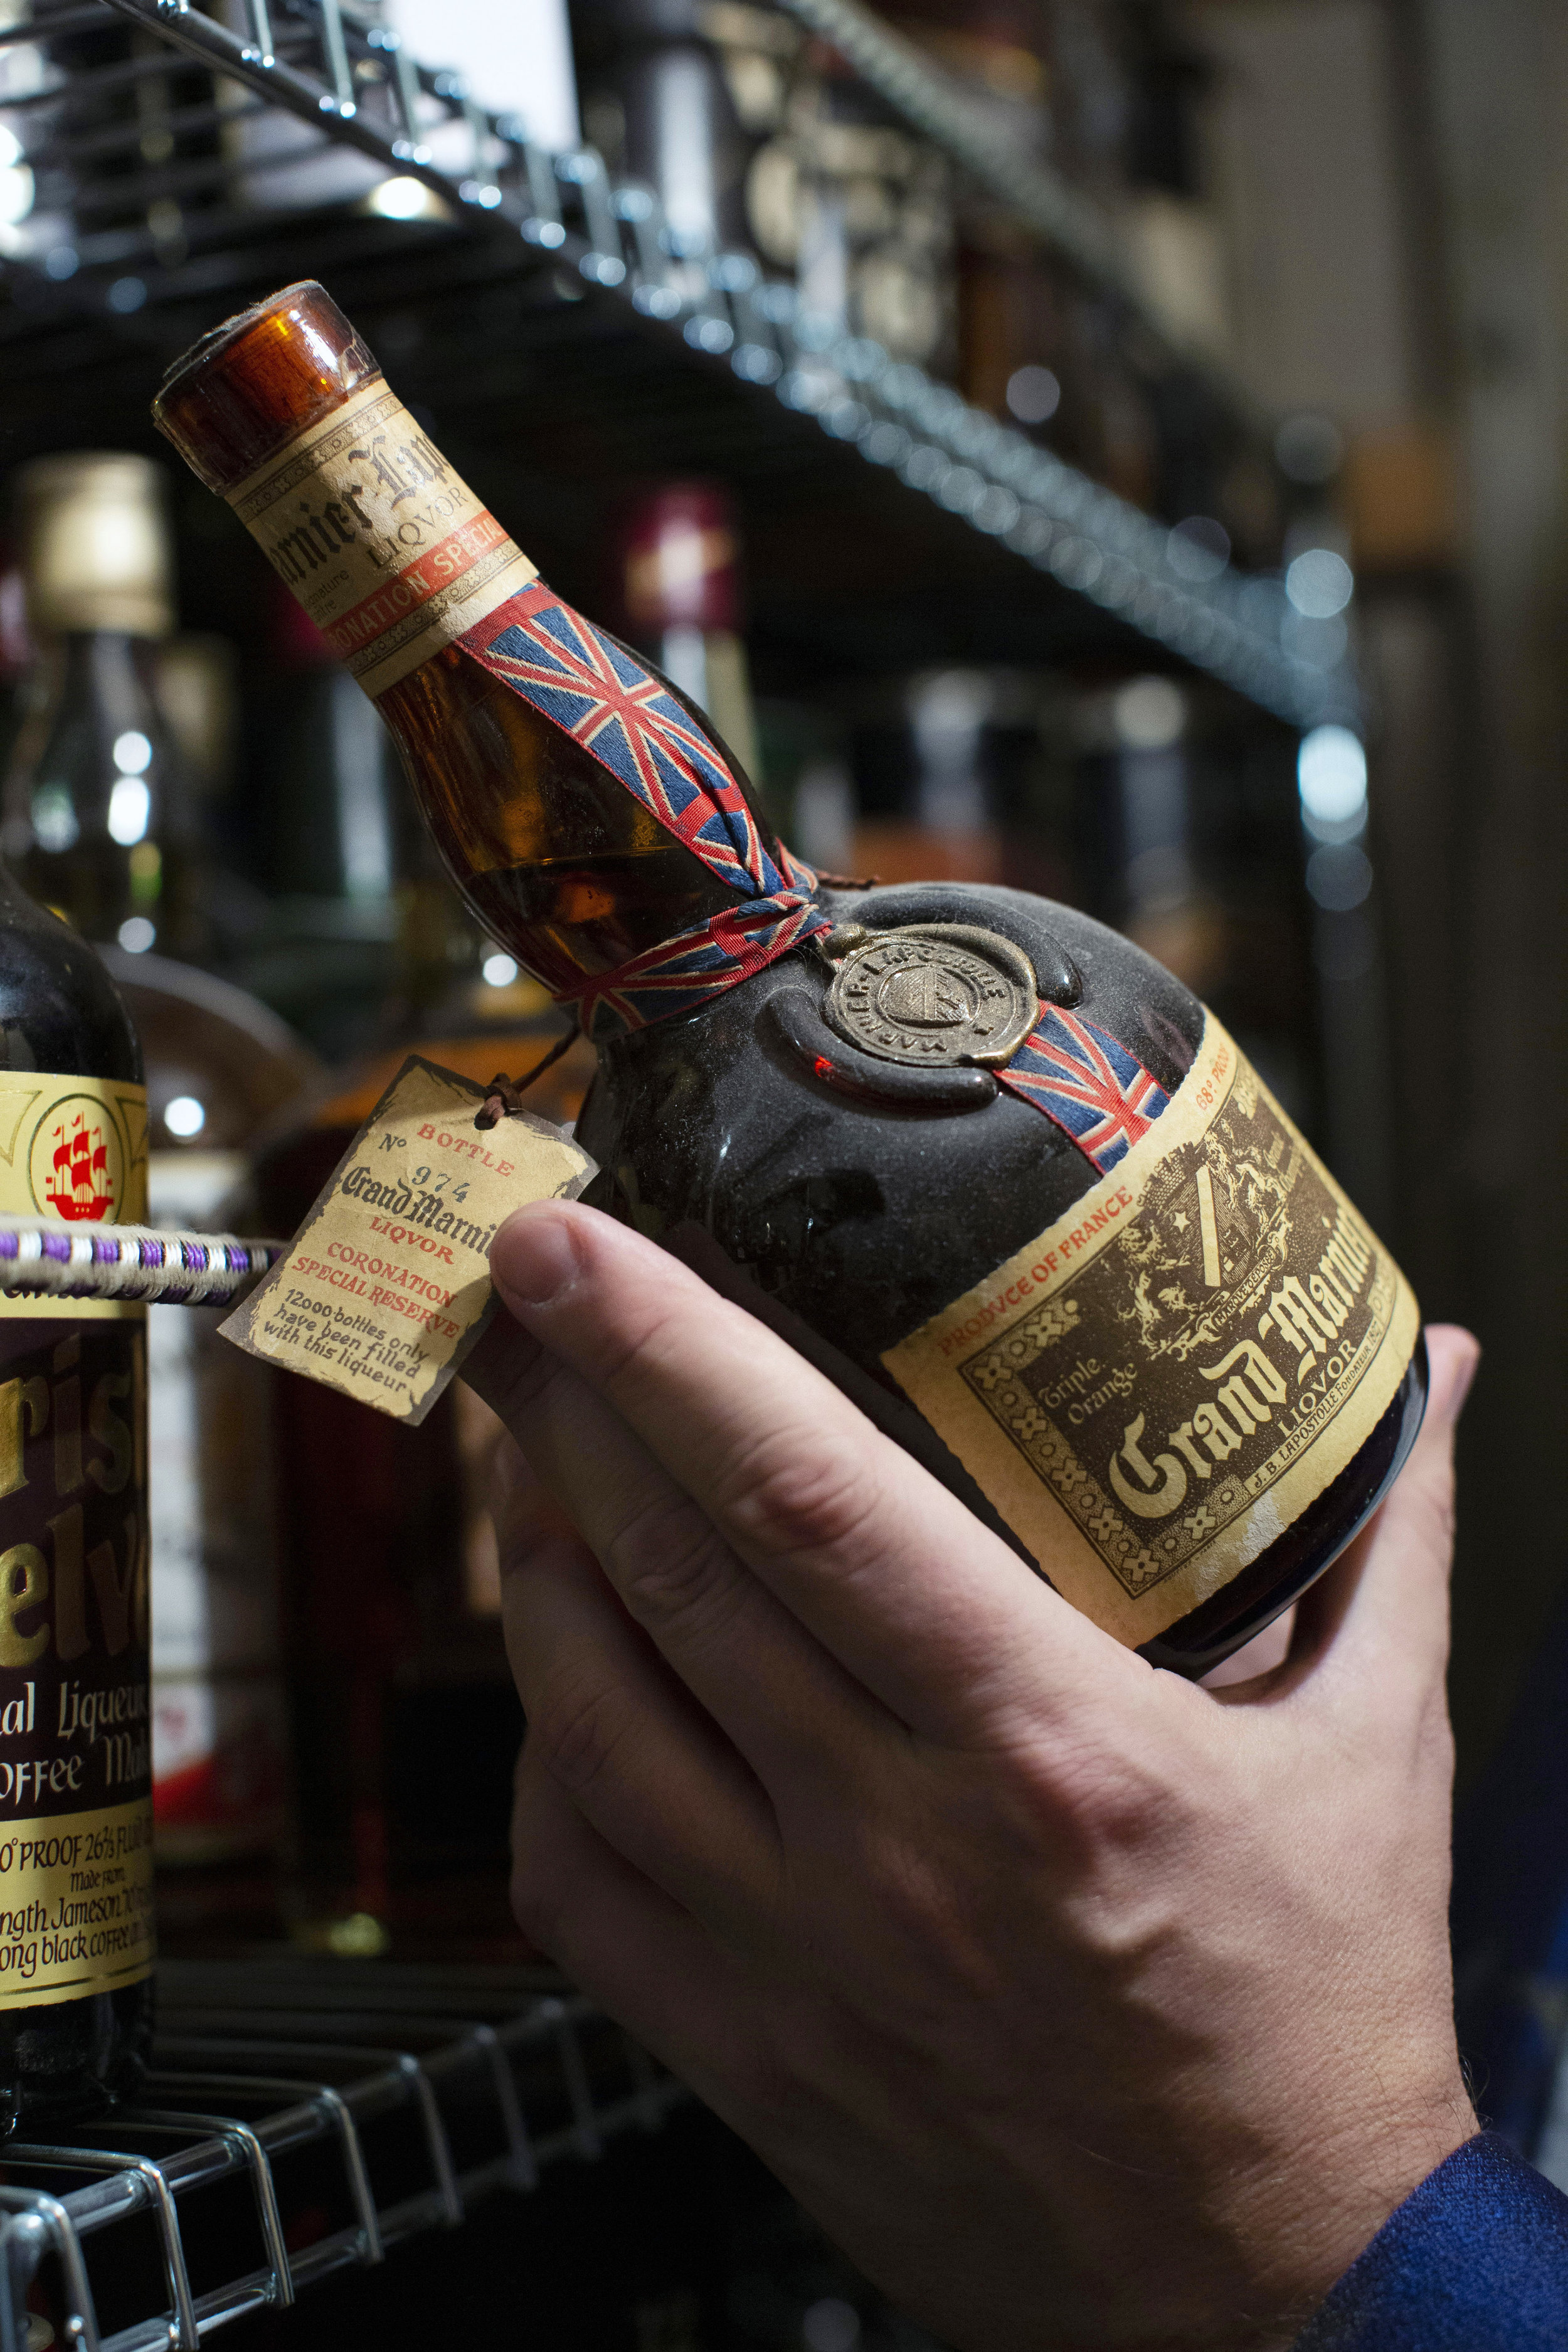 A 30-year-old Grand Marnier from the coronation of Elizabeth II.